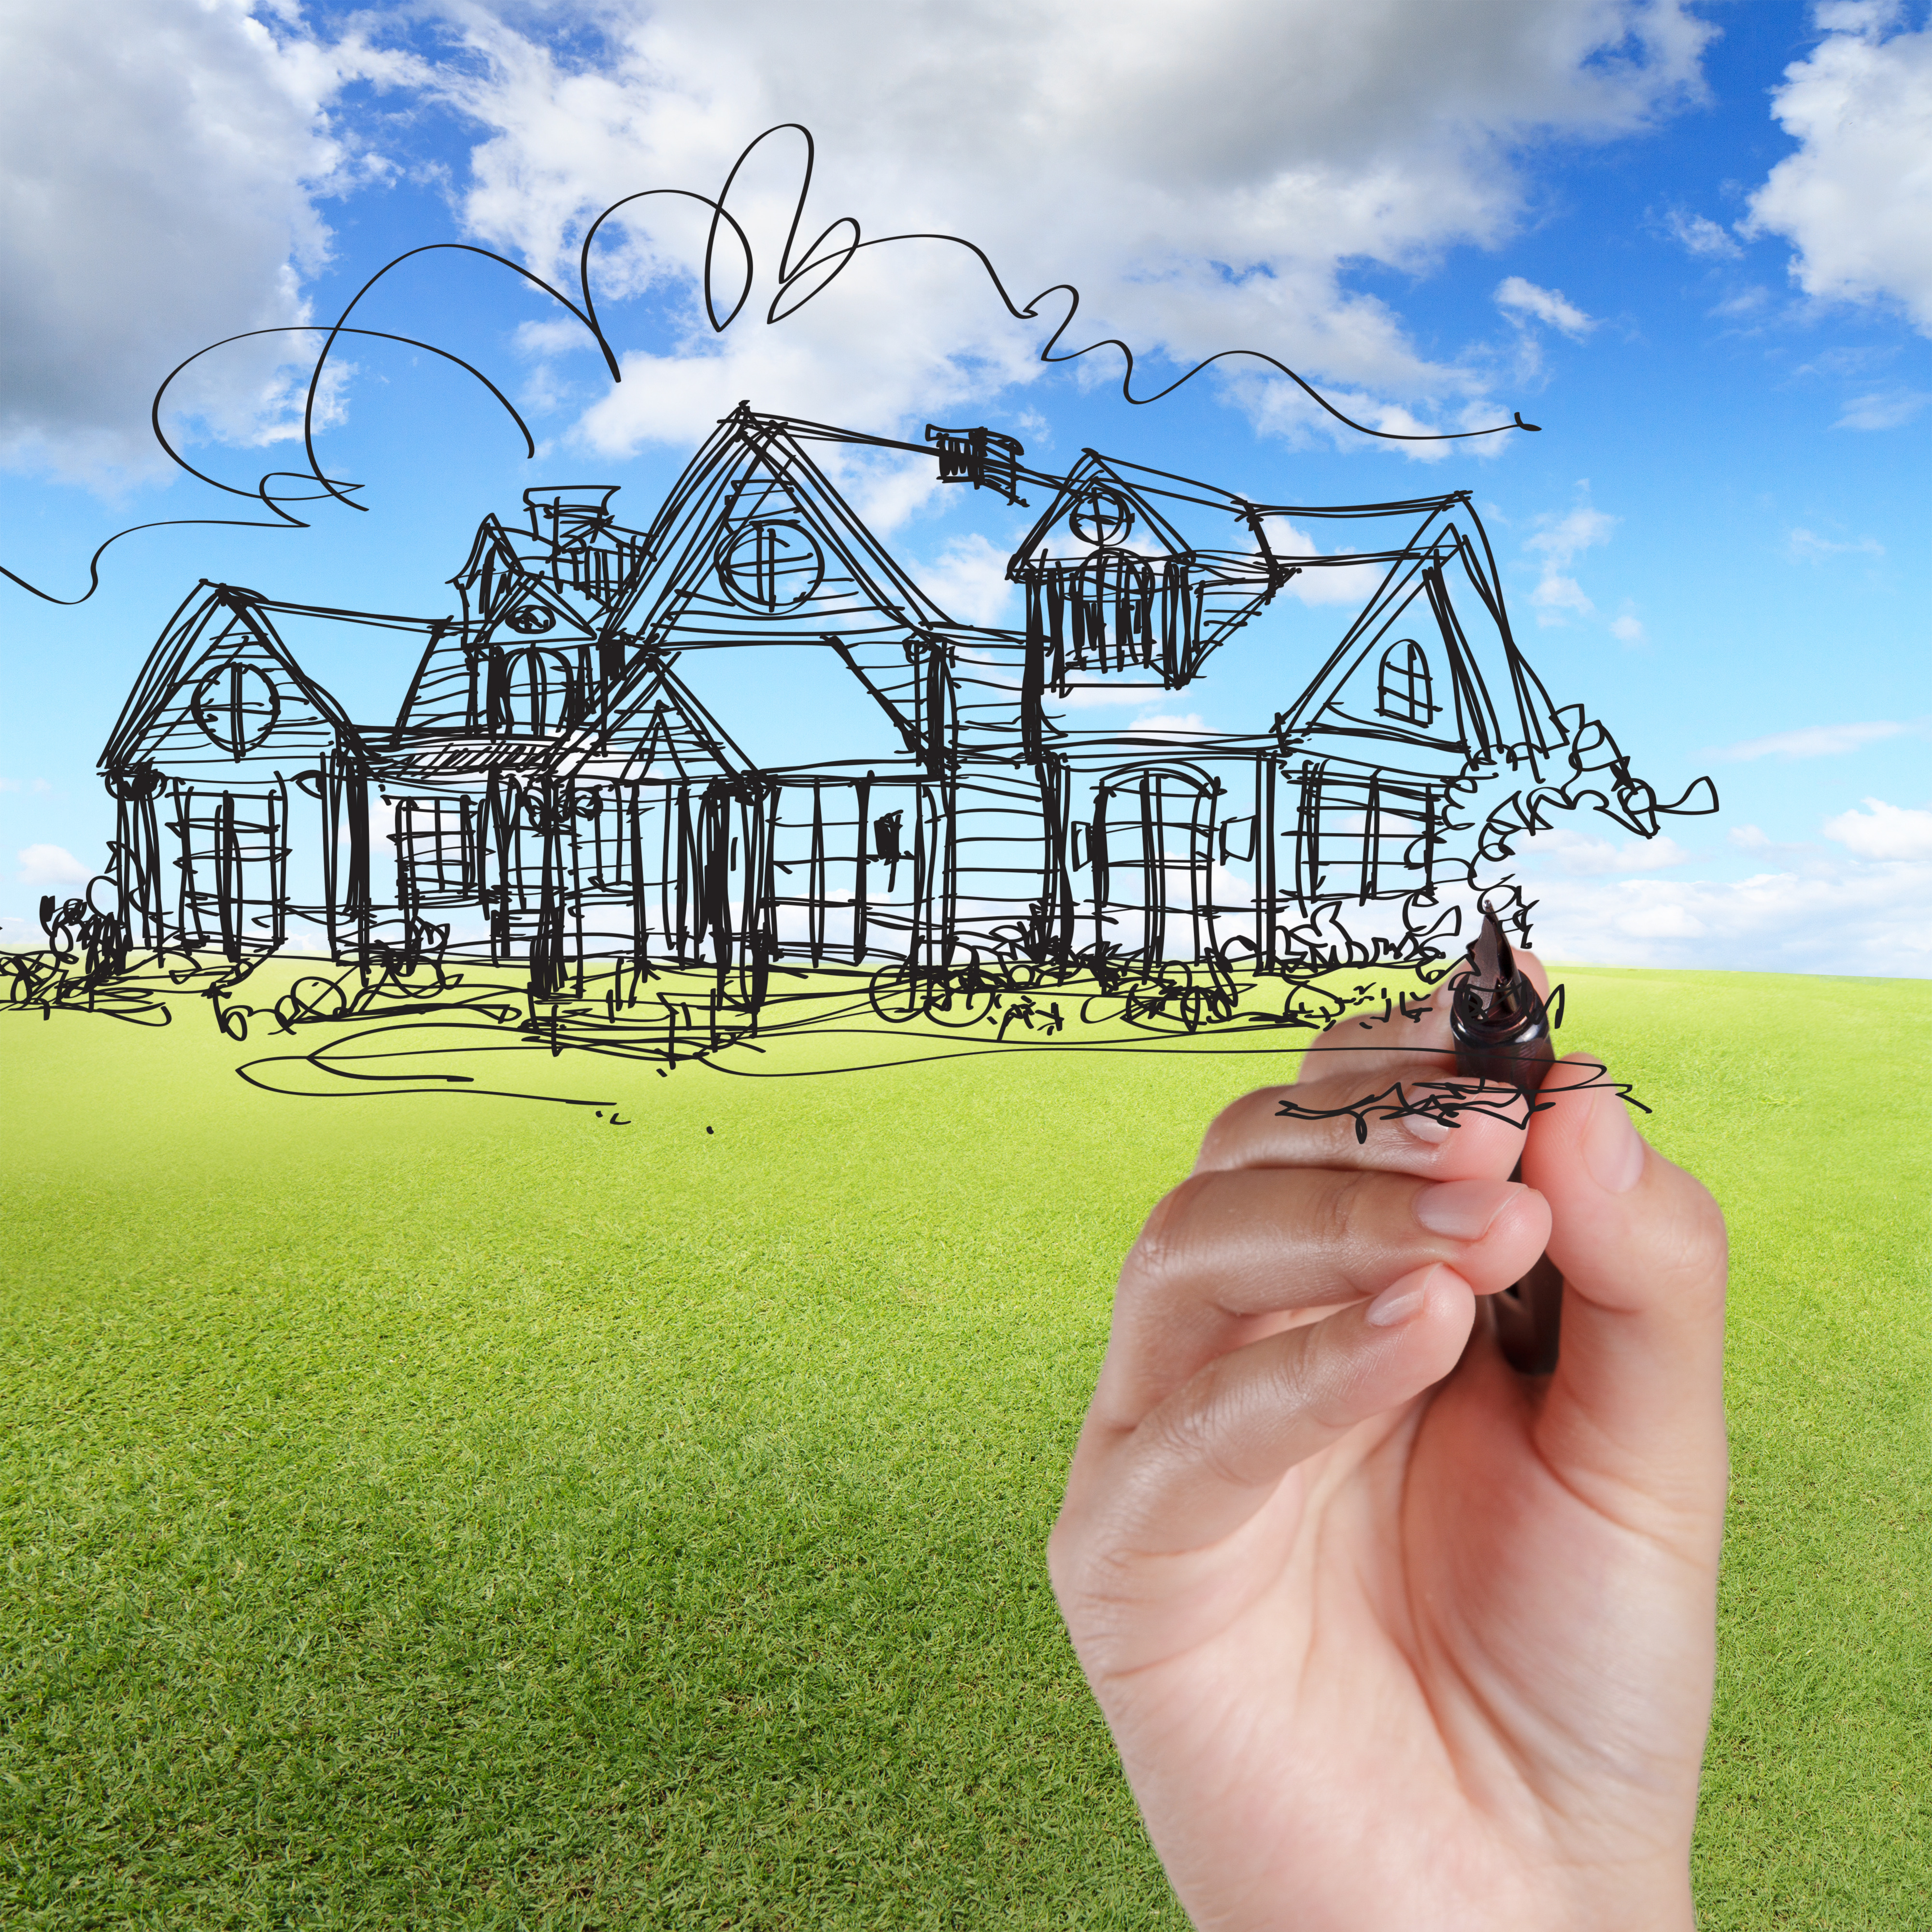 Low down payment Land and Home Construction Loans in